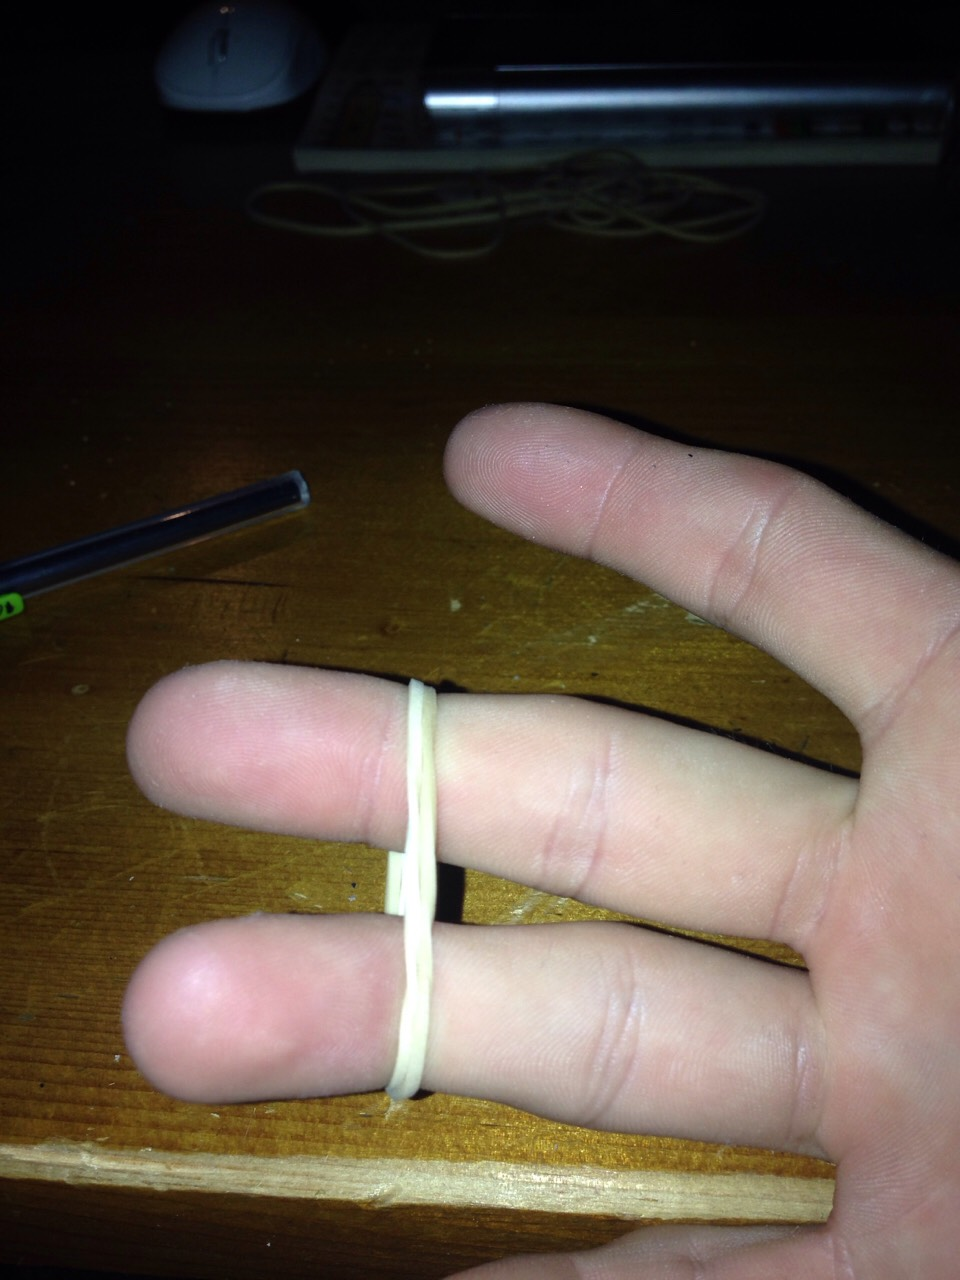 Double up the rubber band to make it extra tight